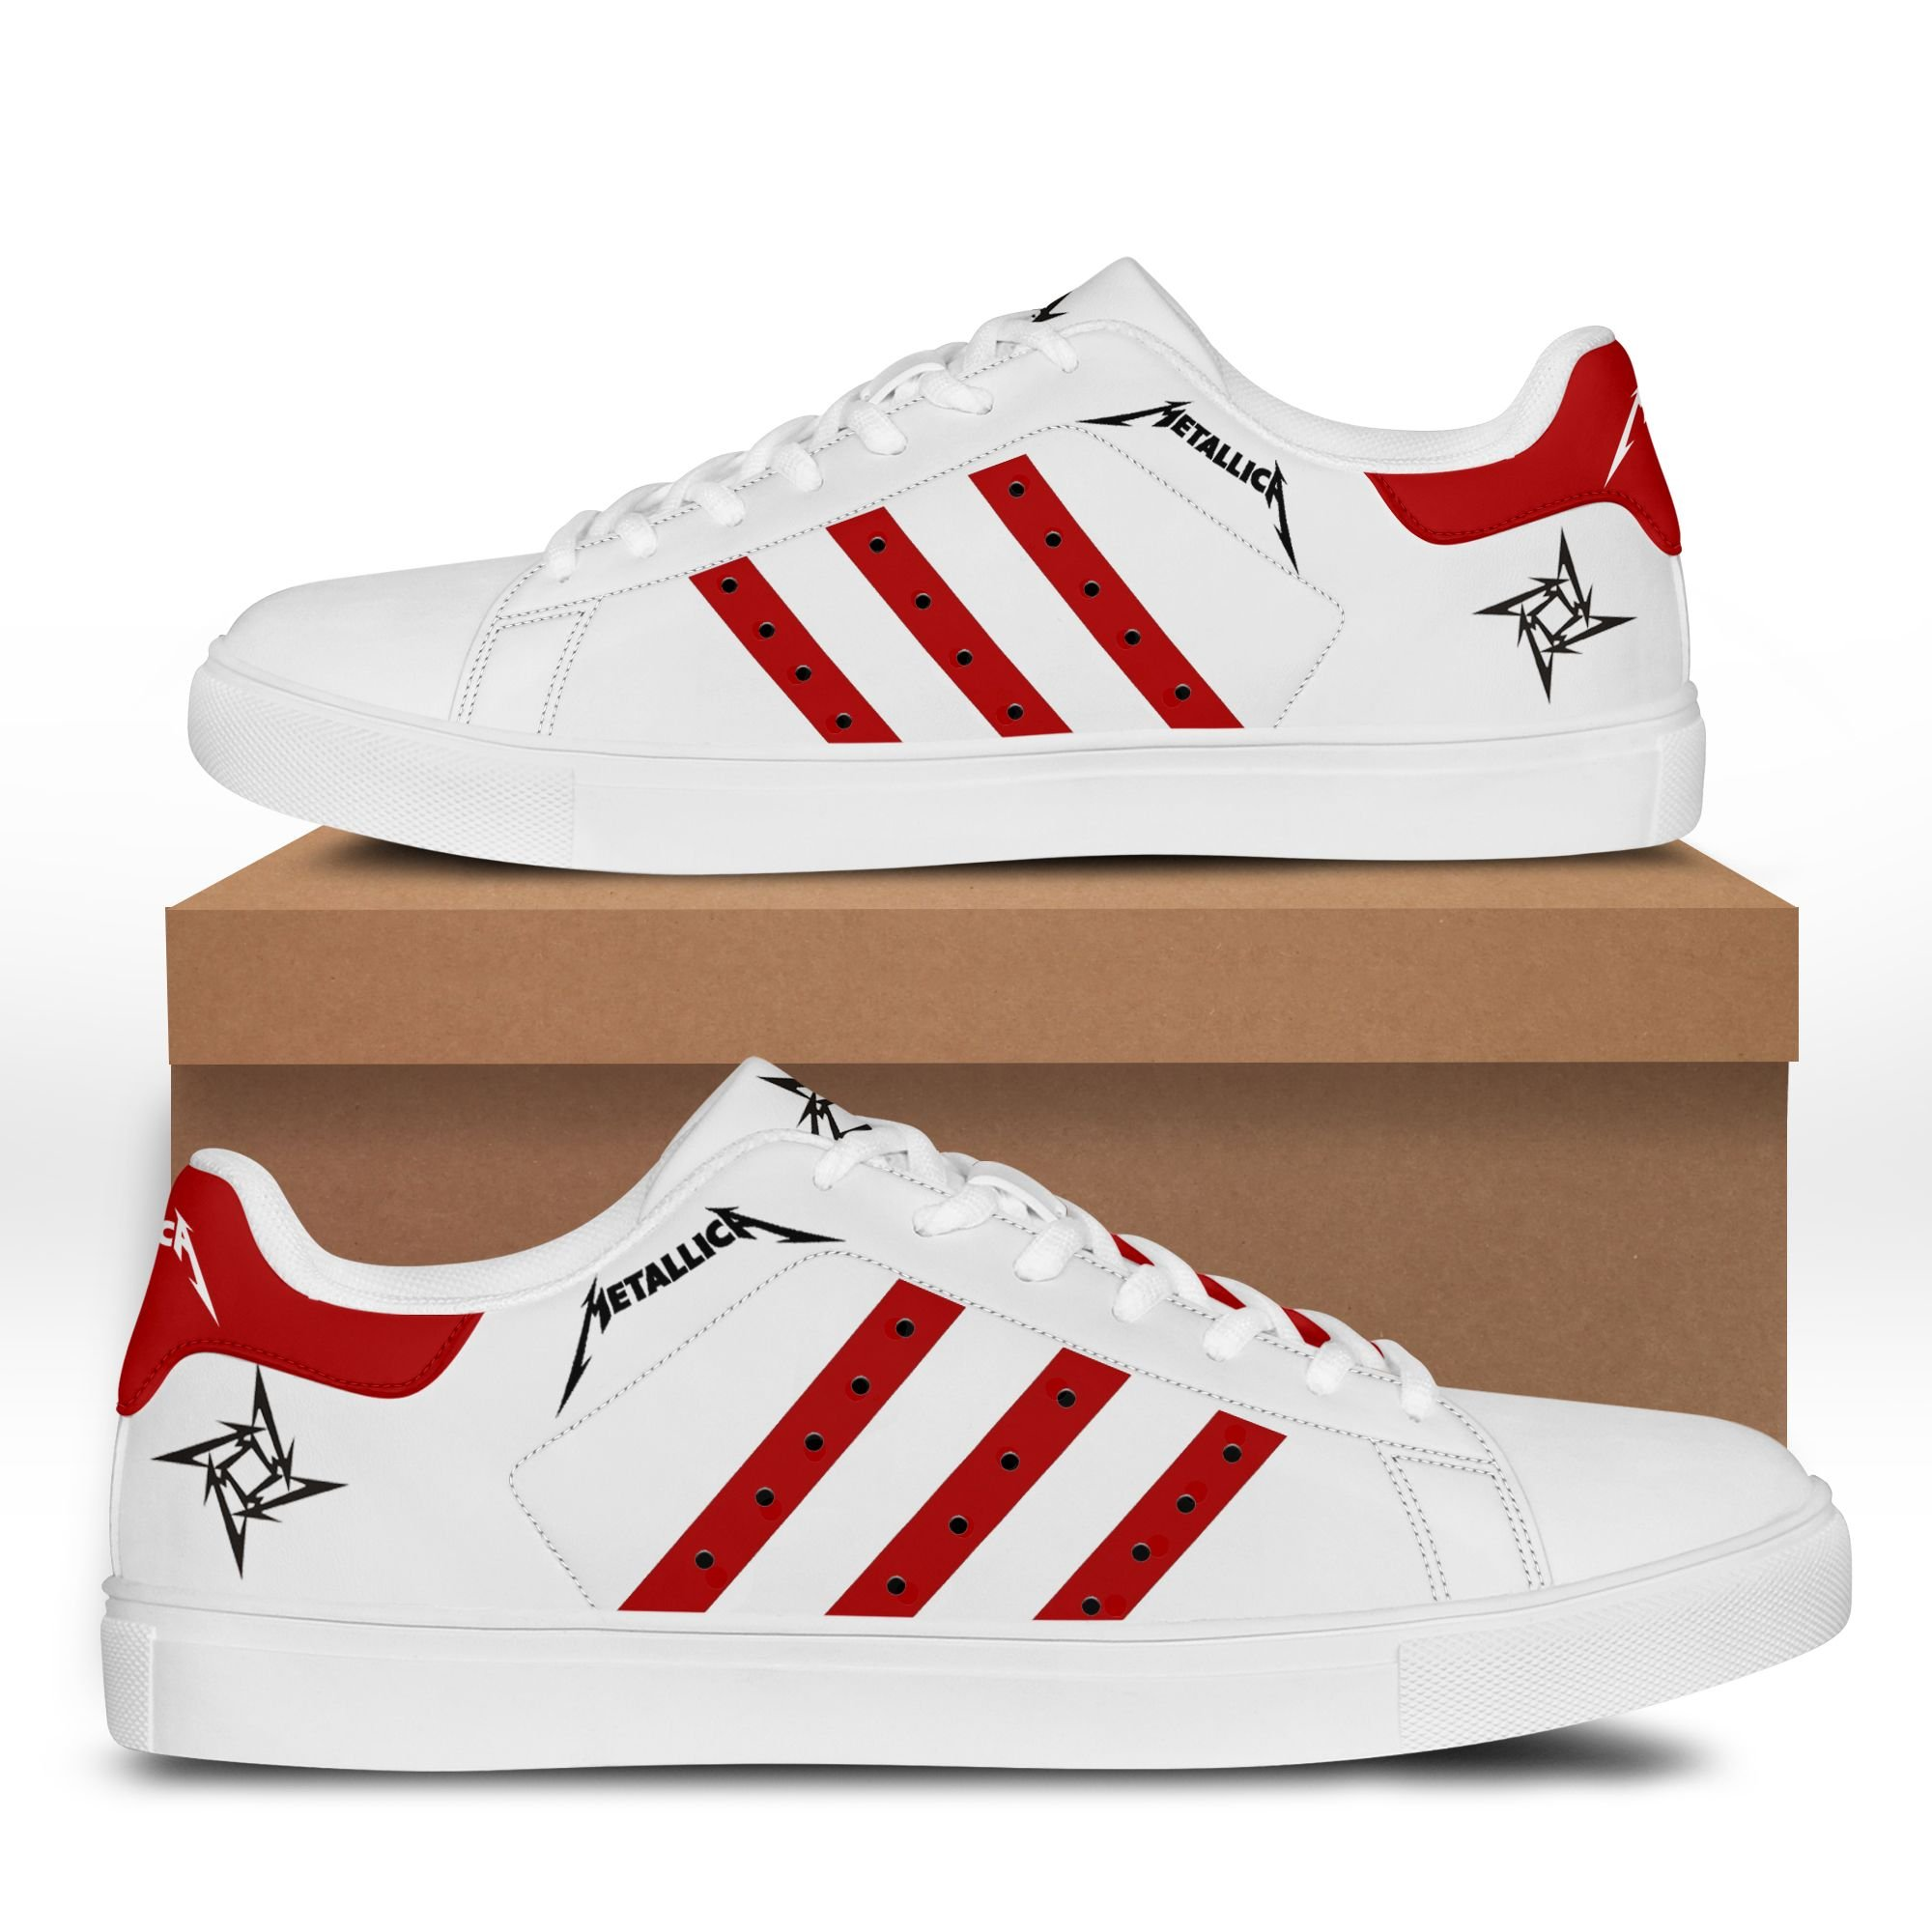 Metallica red line white Stan Smith Shoes